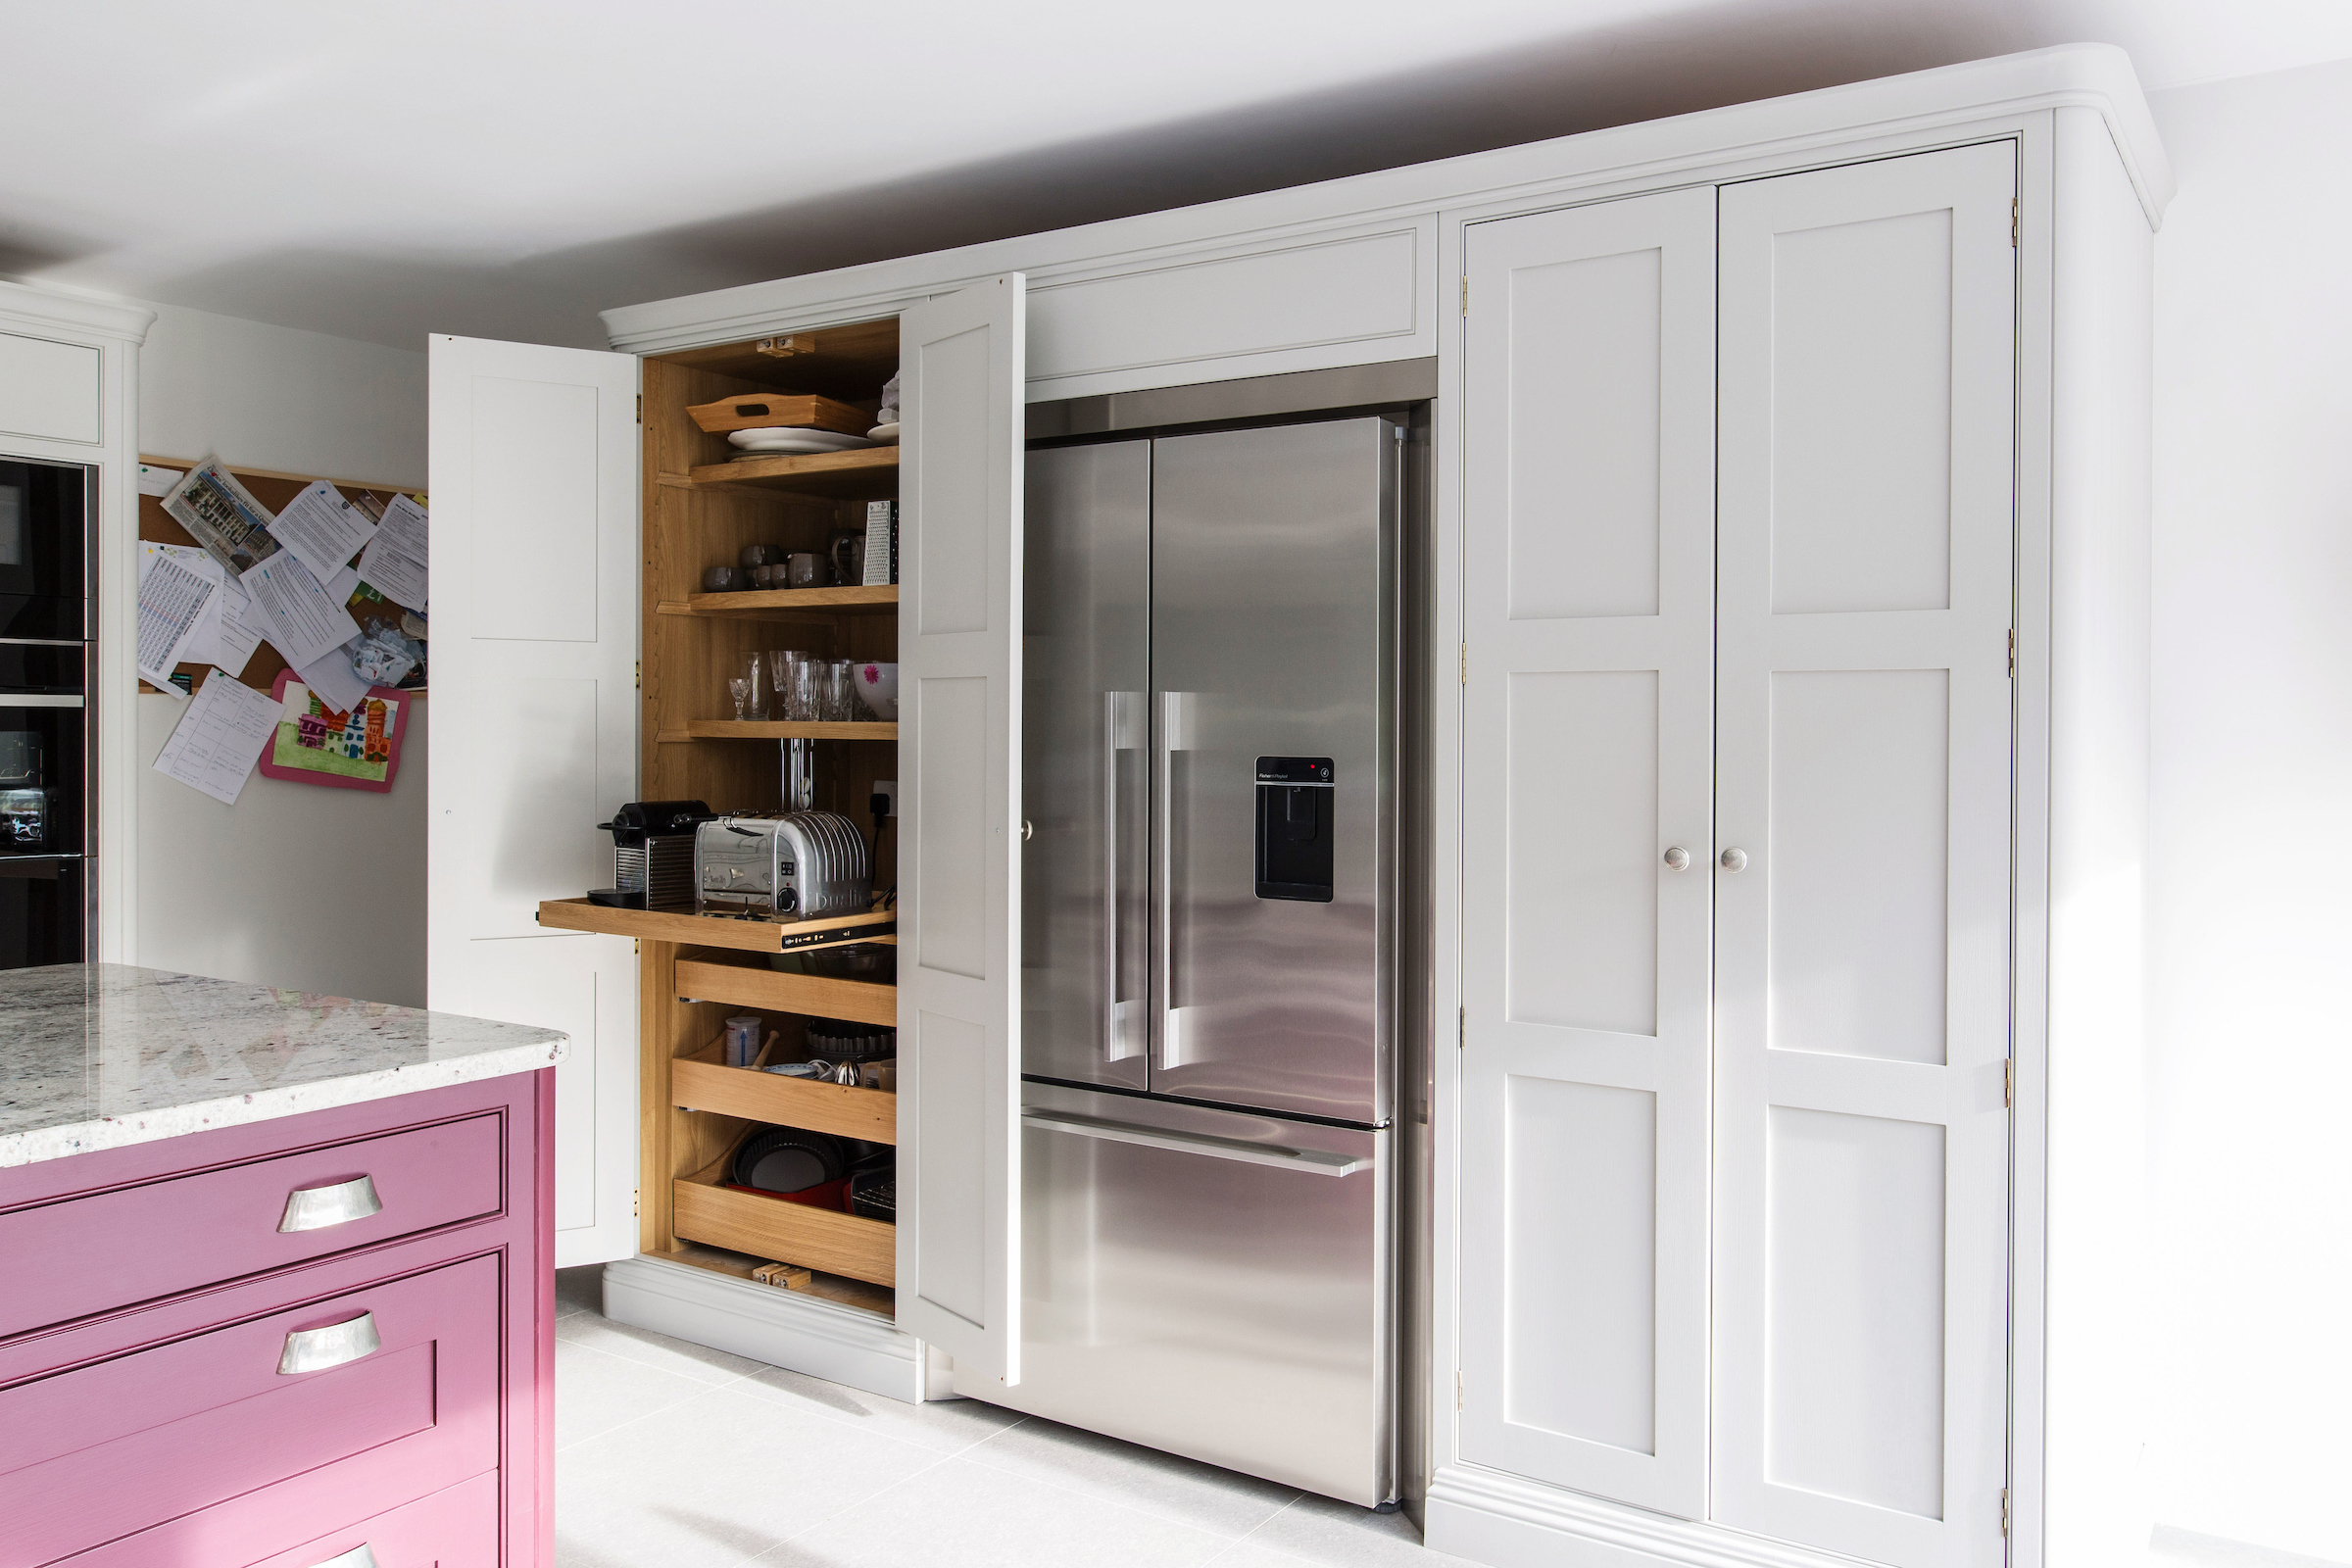 burlanes kitchen storage solutions